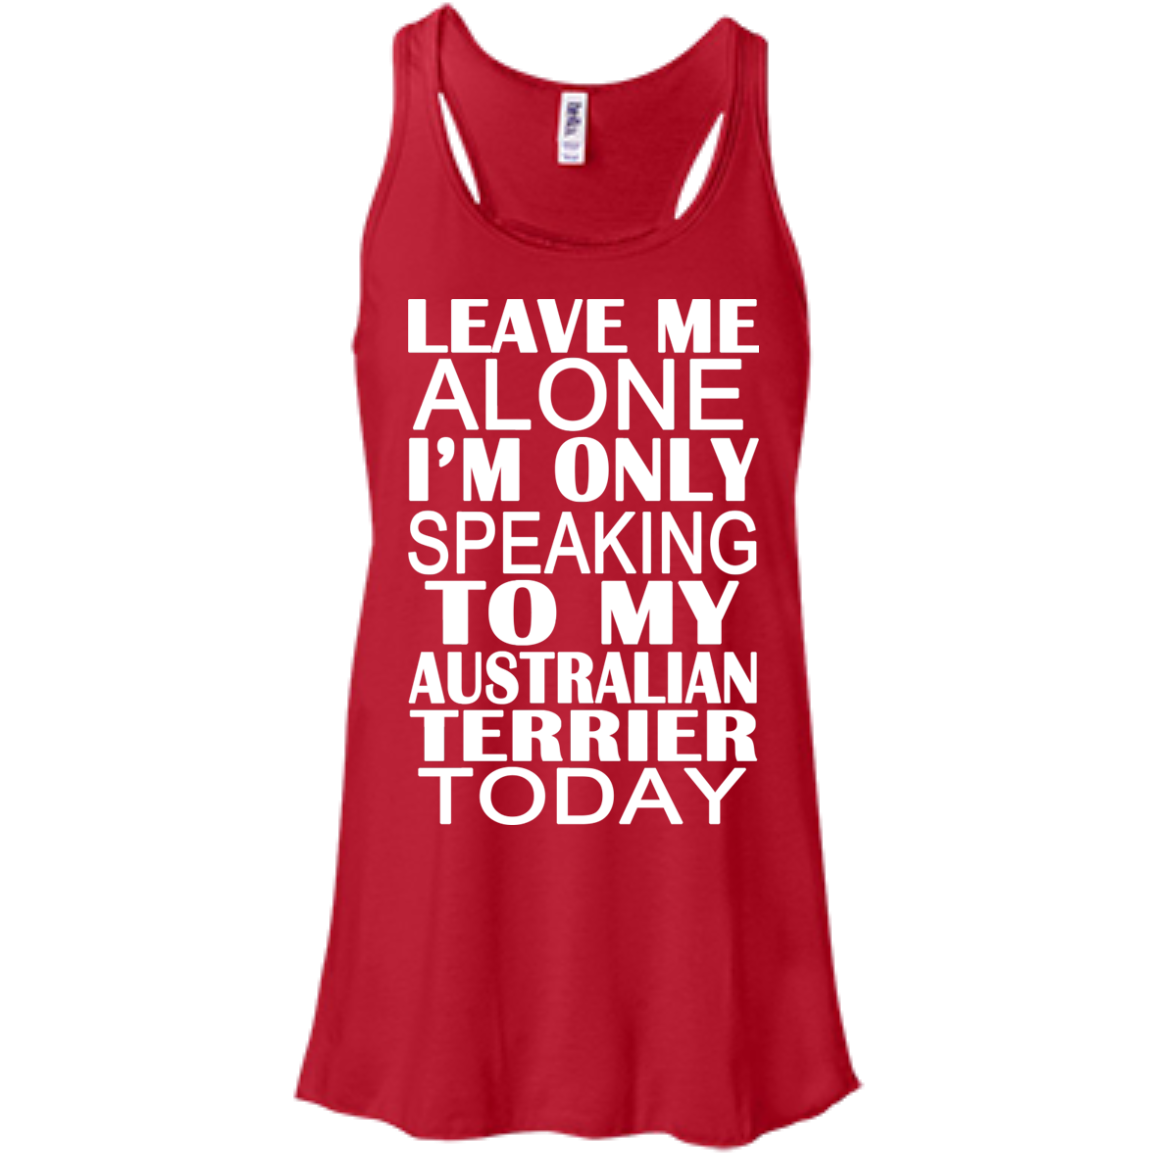 Leave Me Alone Im Only Speaking To My Australian Terrier Today Flowy Racerback Tanks